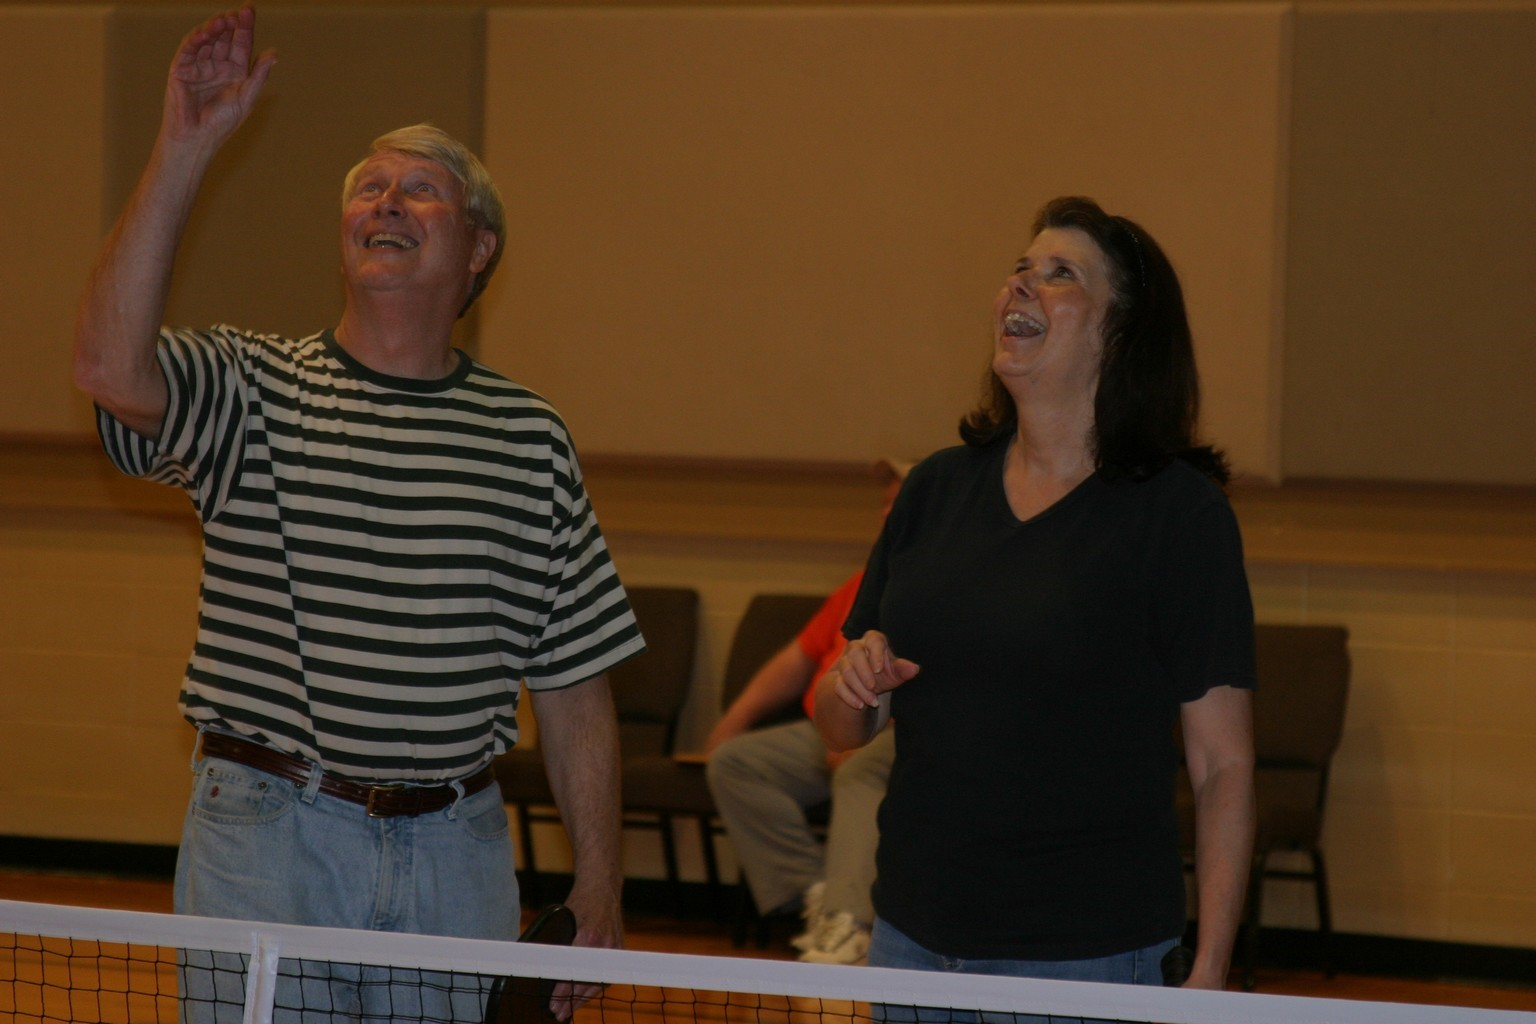 husband and wife playing pickleball in trussville alabama, alabama pickleball, trussville pickleball, birmingham pickleball